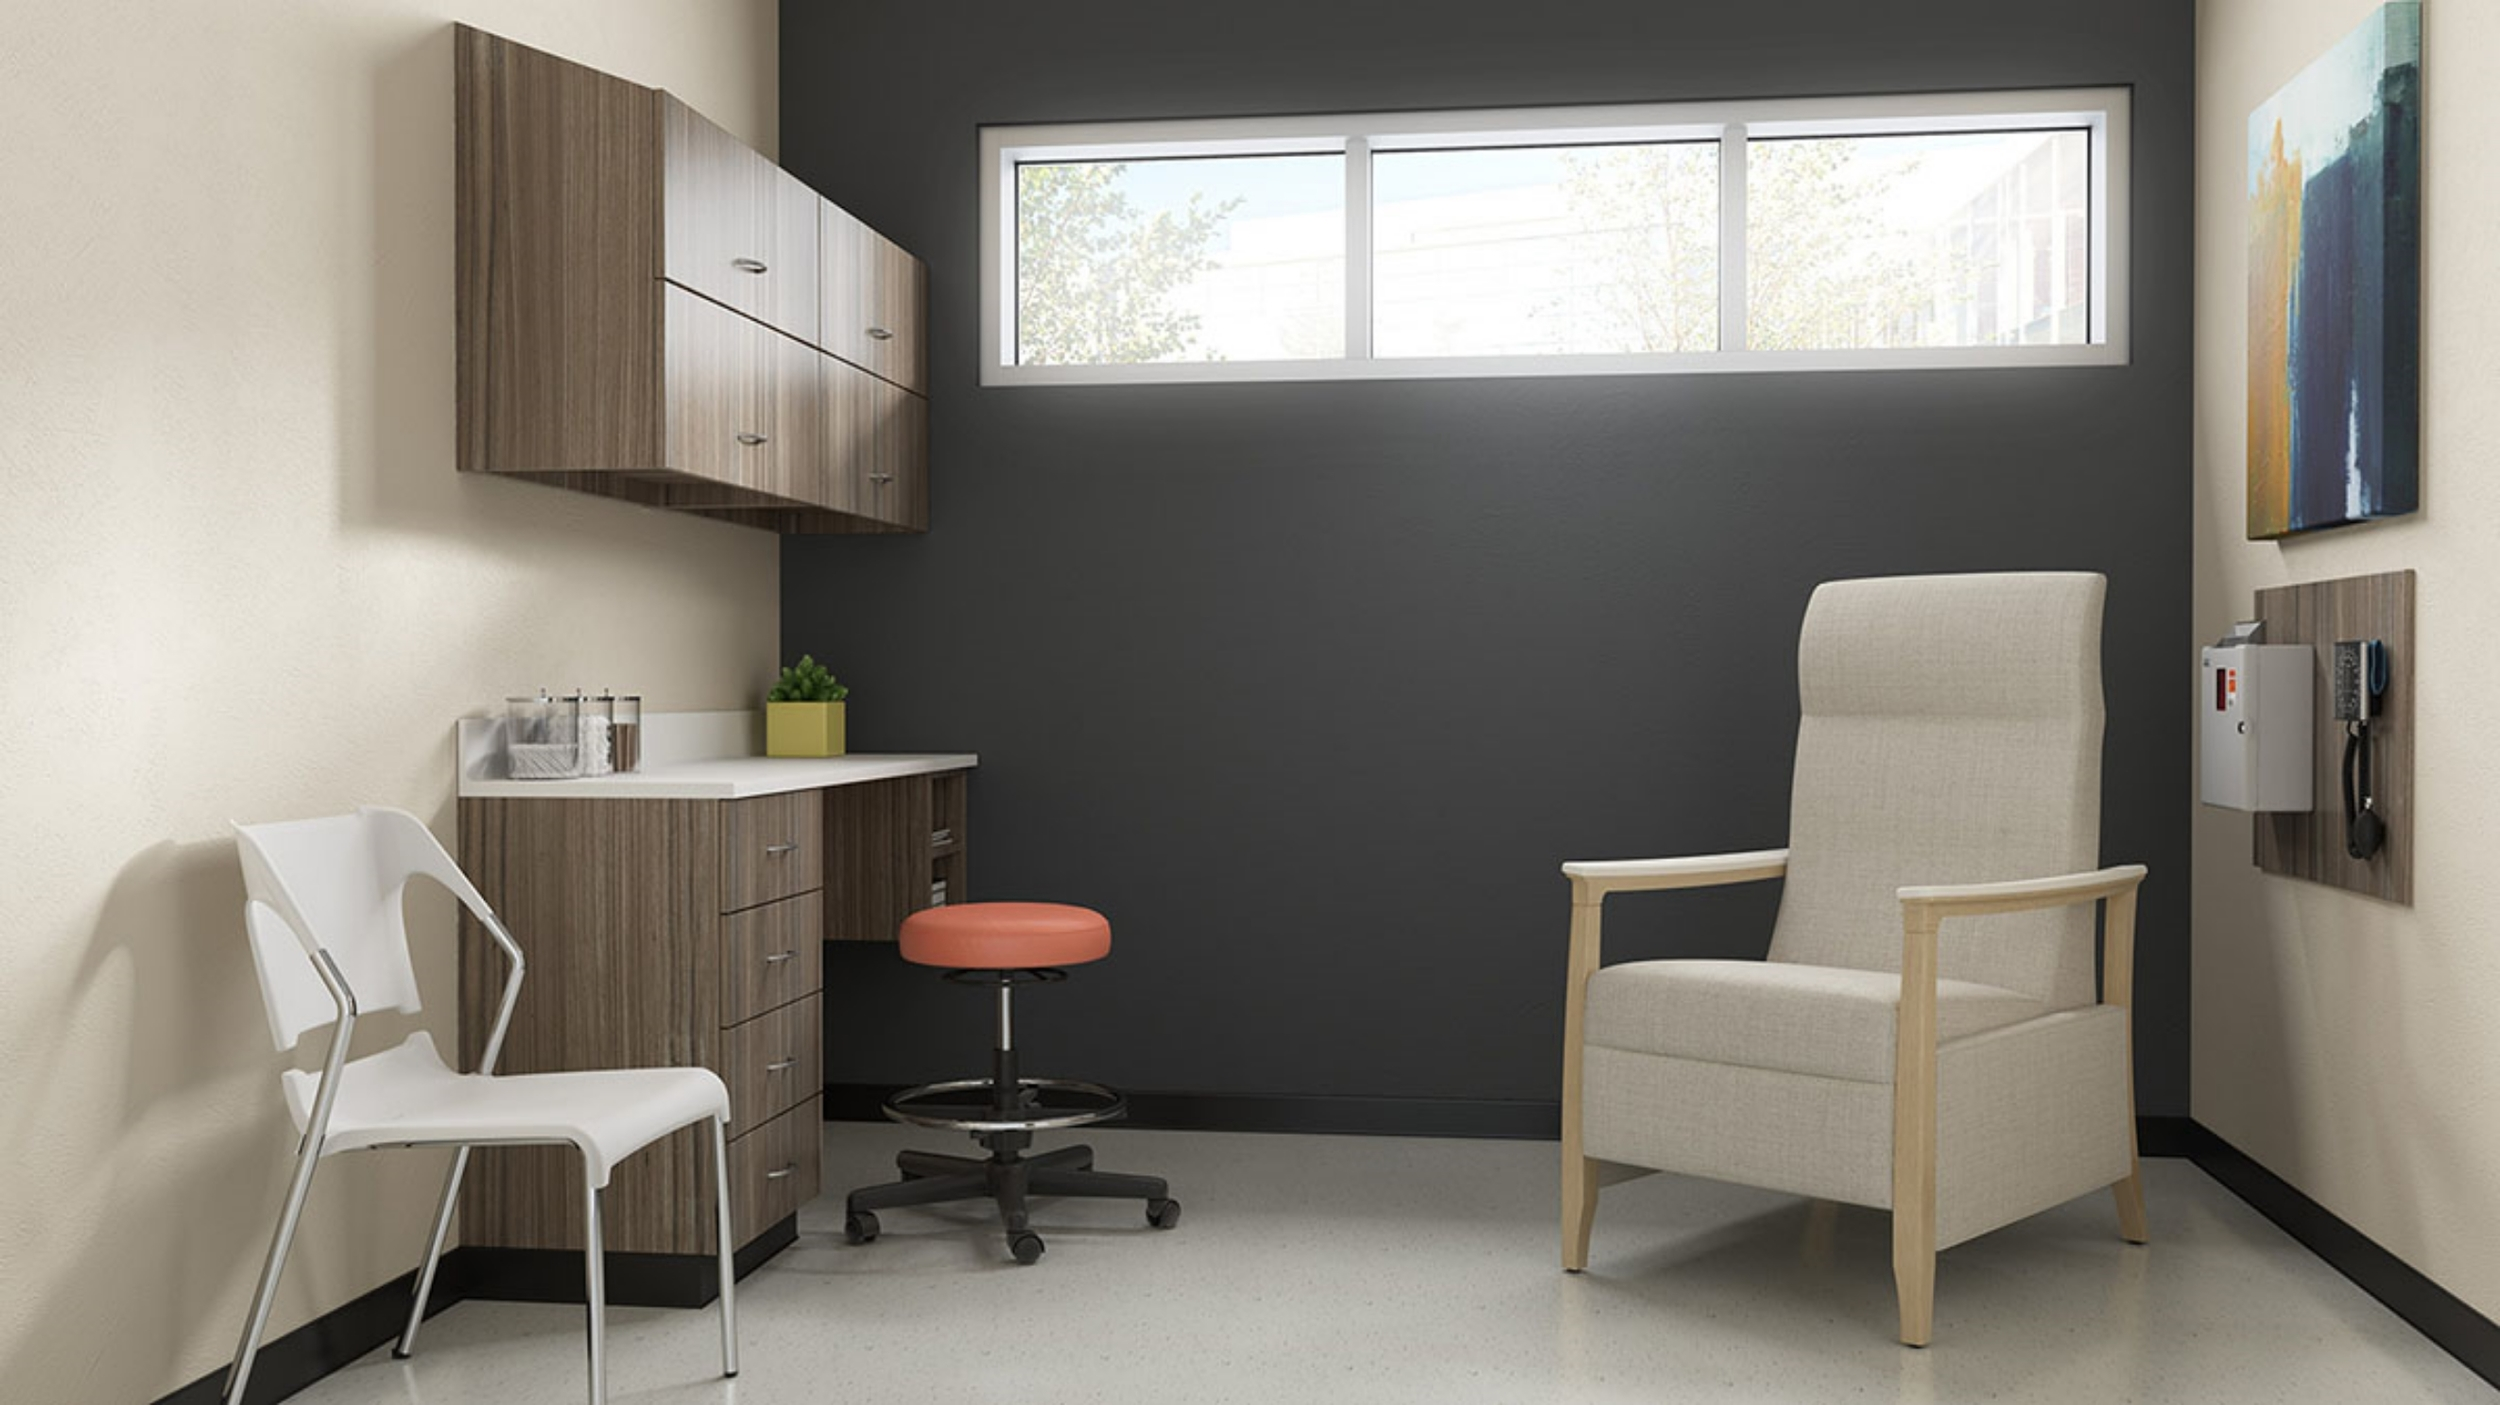 Specialty Healthcare Furnishings